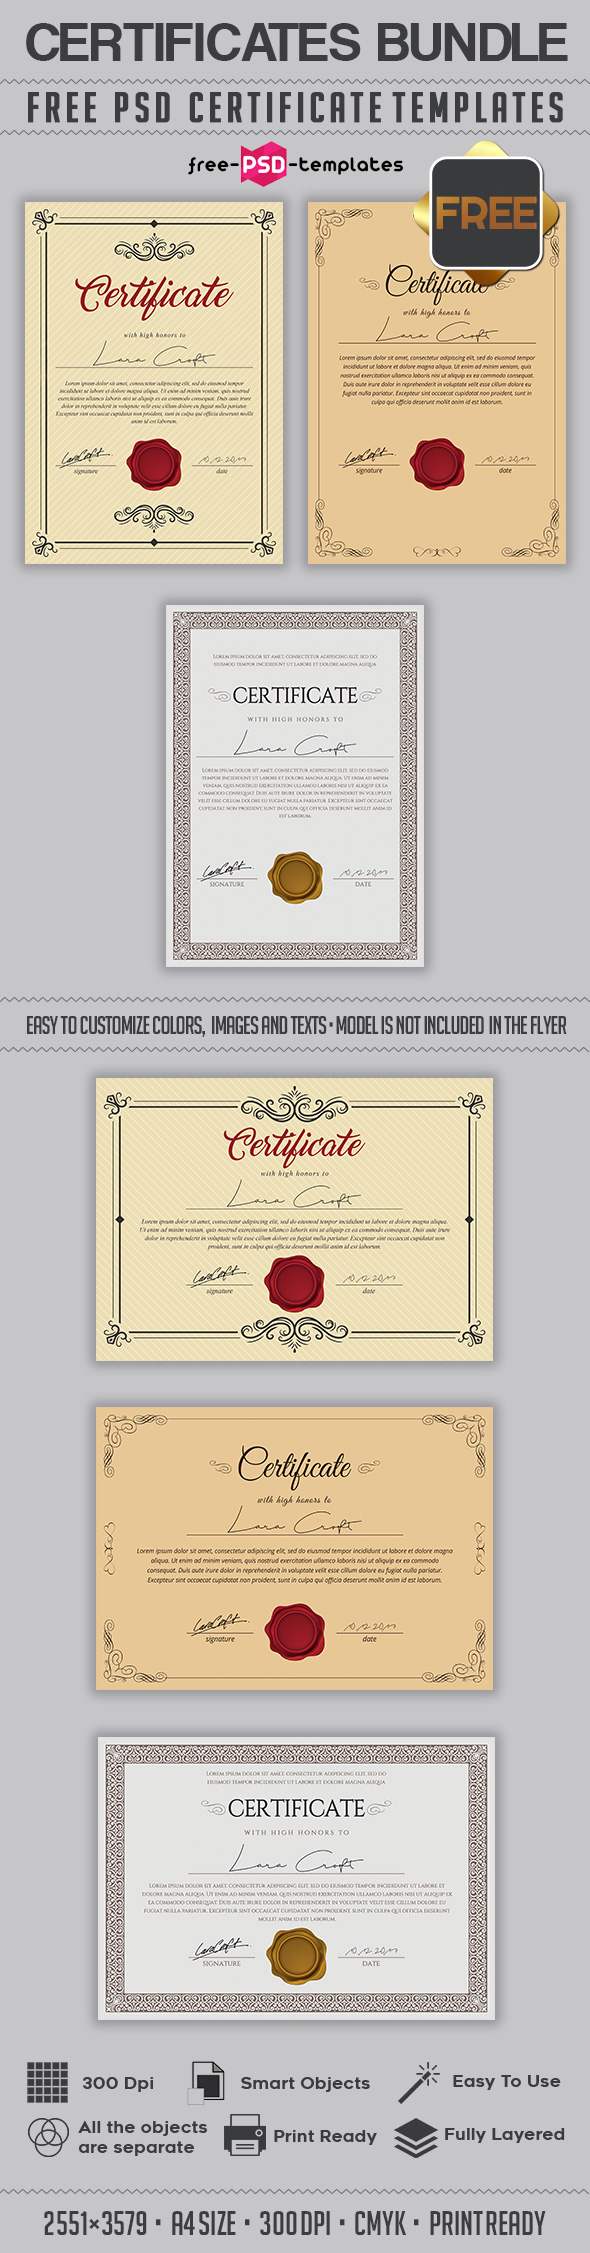 Free psd multipurpose certificates bundle free psd templates the certificates layered and well organized you are free to download this psd multipurpose certificates bundle template and modify it the way you wish 1betcityfo Choice Image